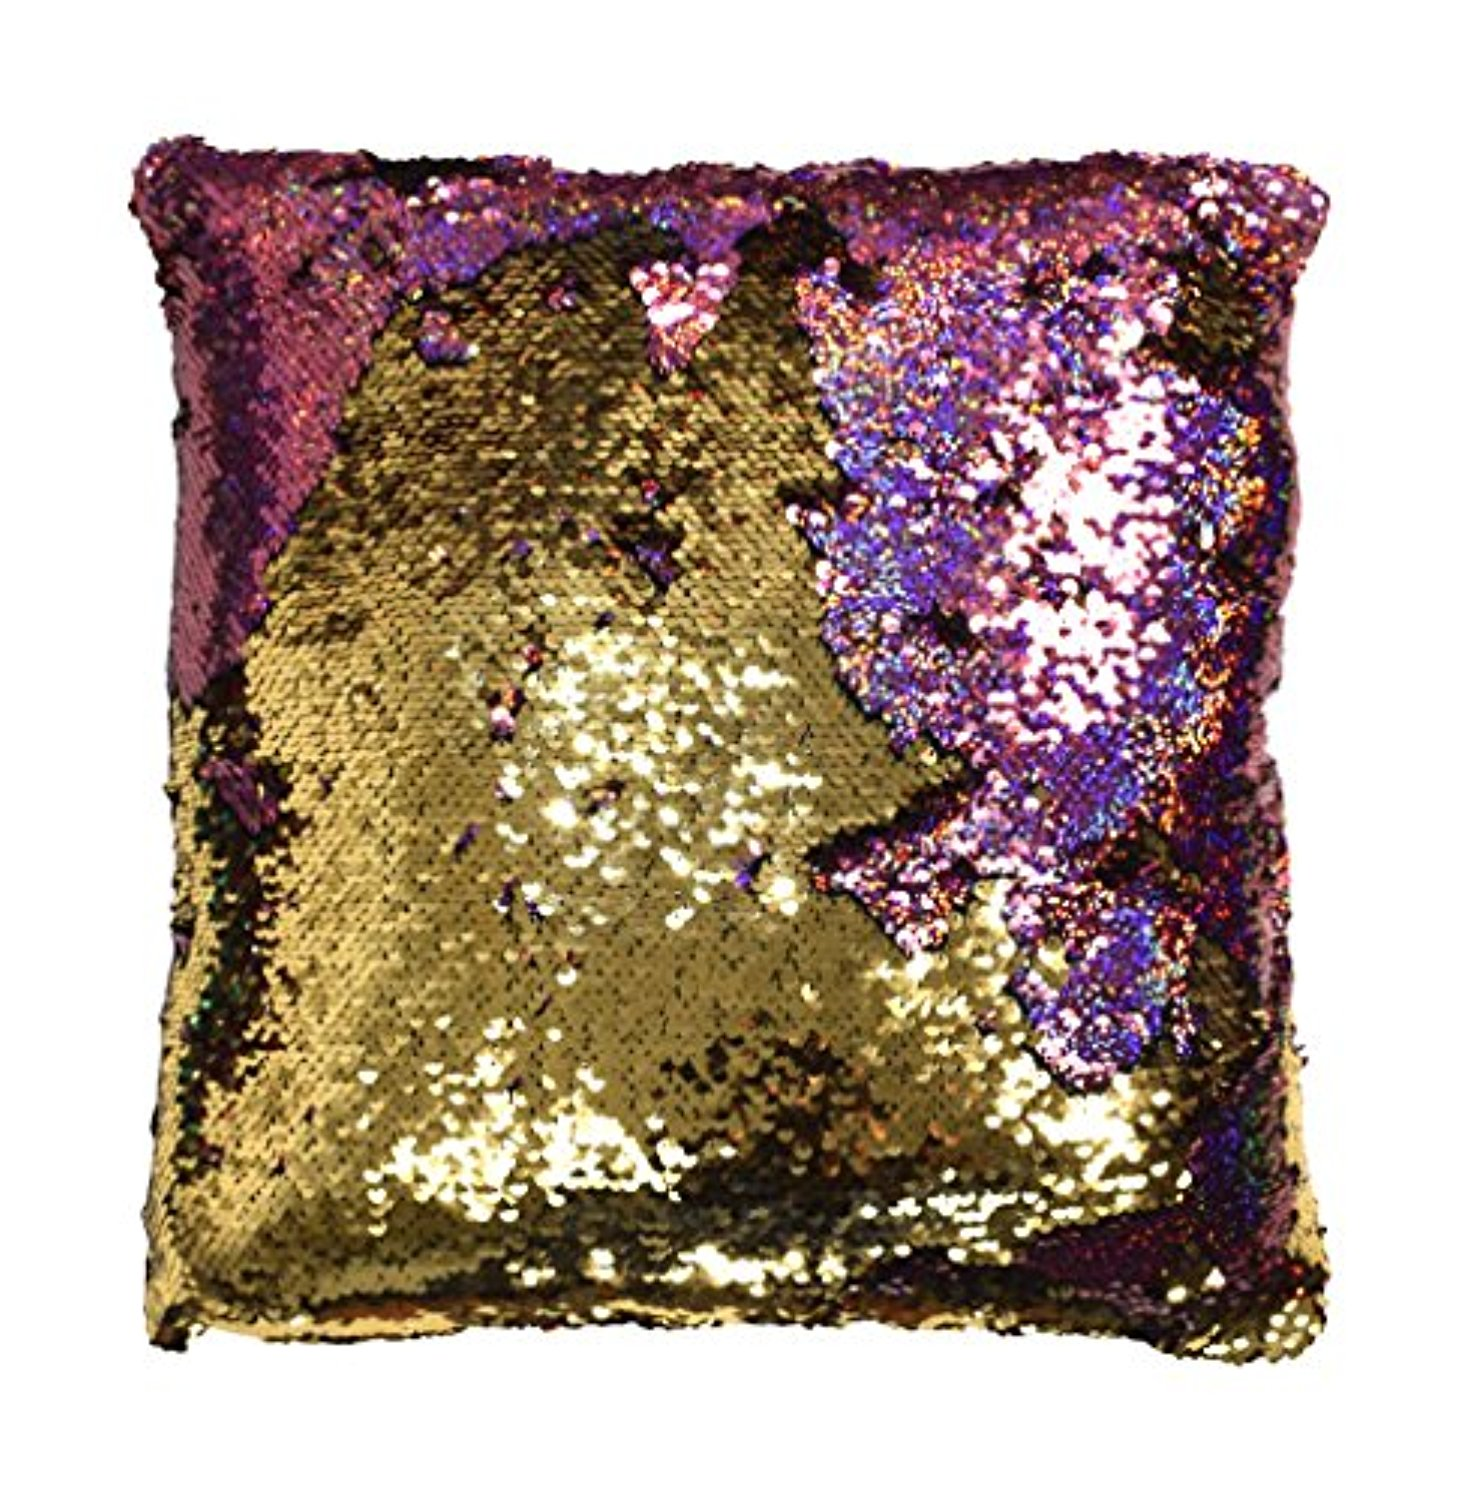 Couture Home Collection Haute Du0026#xE9;cor Reversible Sequin Decorative Color  Changing Mermaid Throw